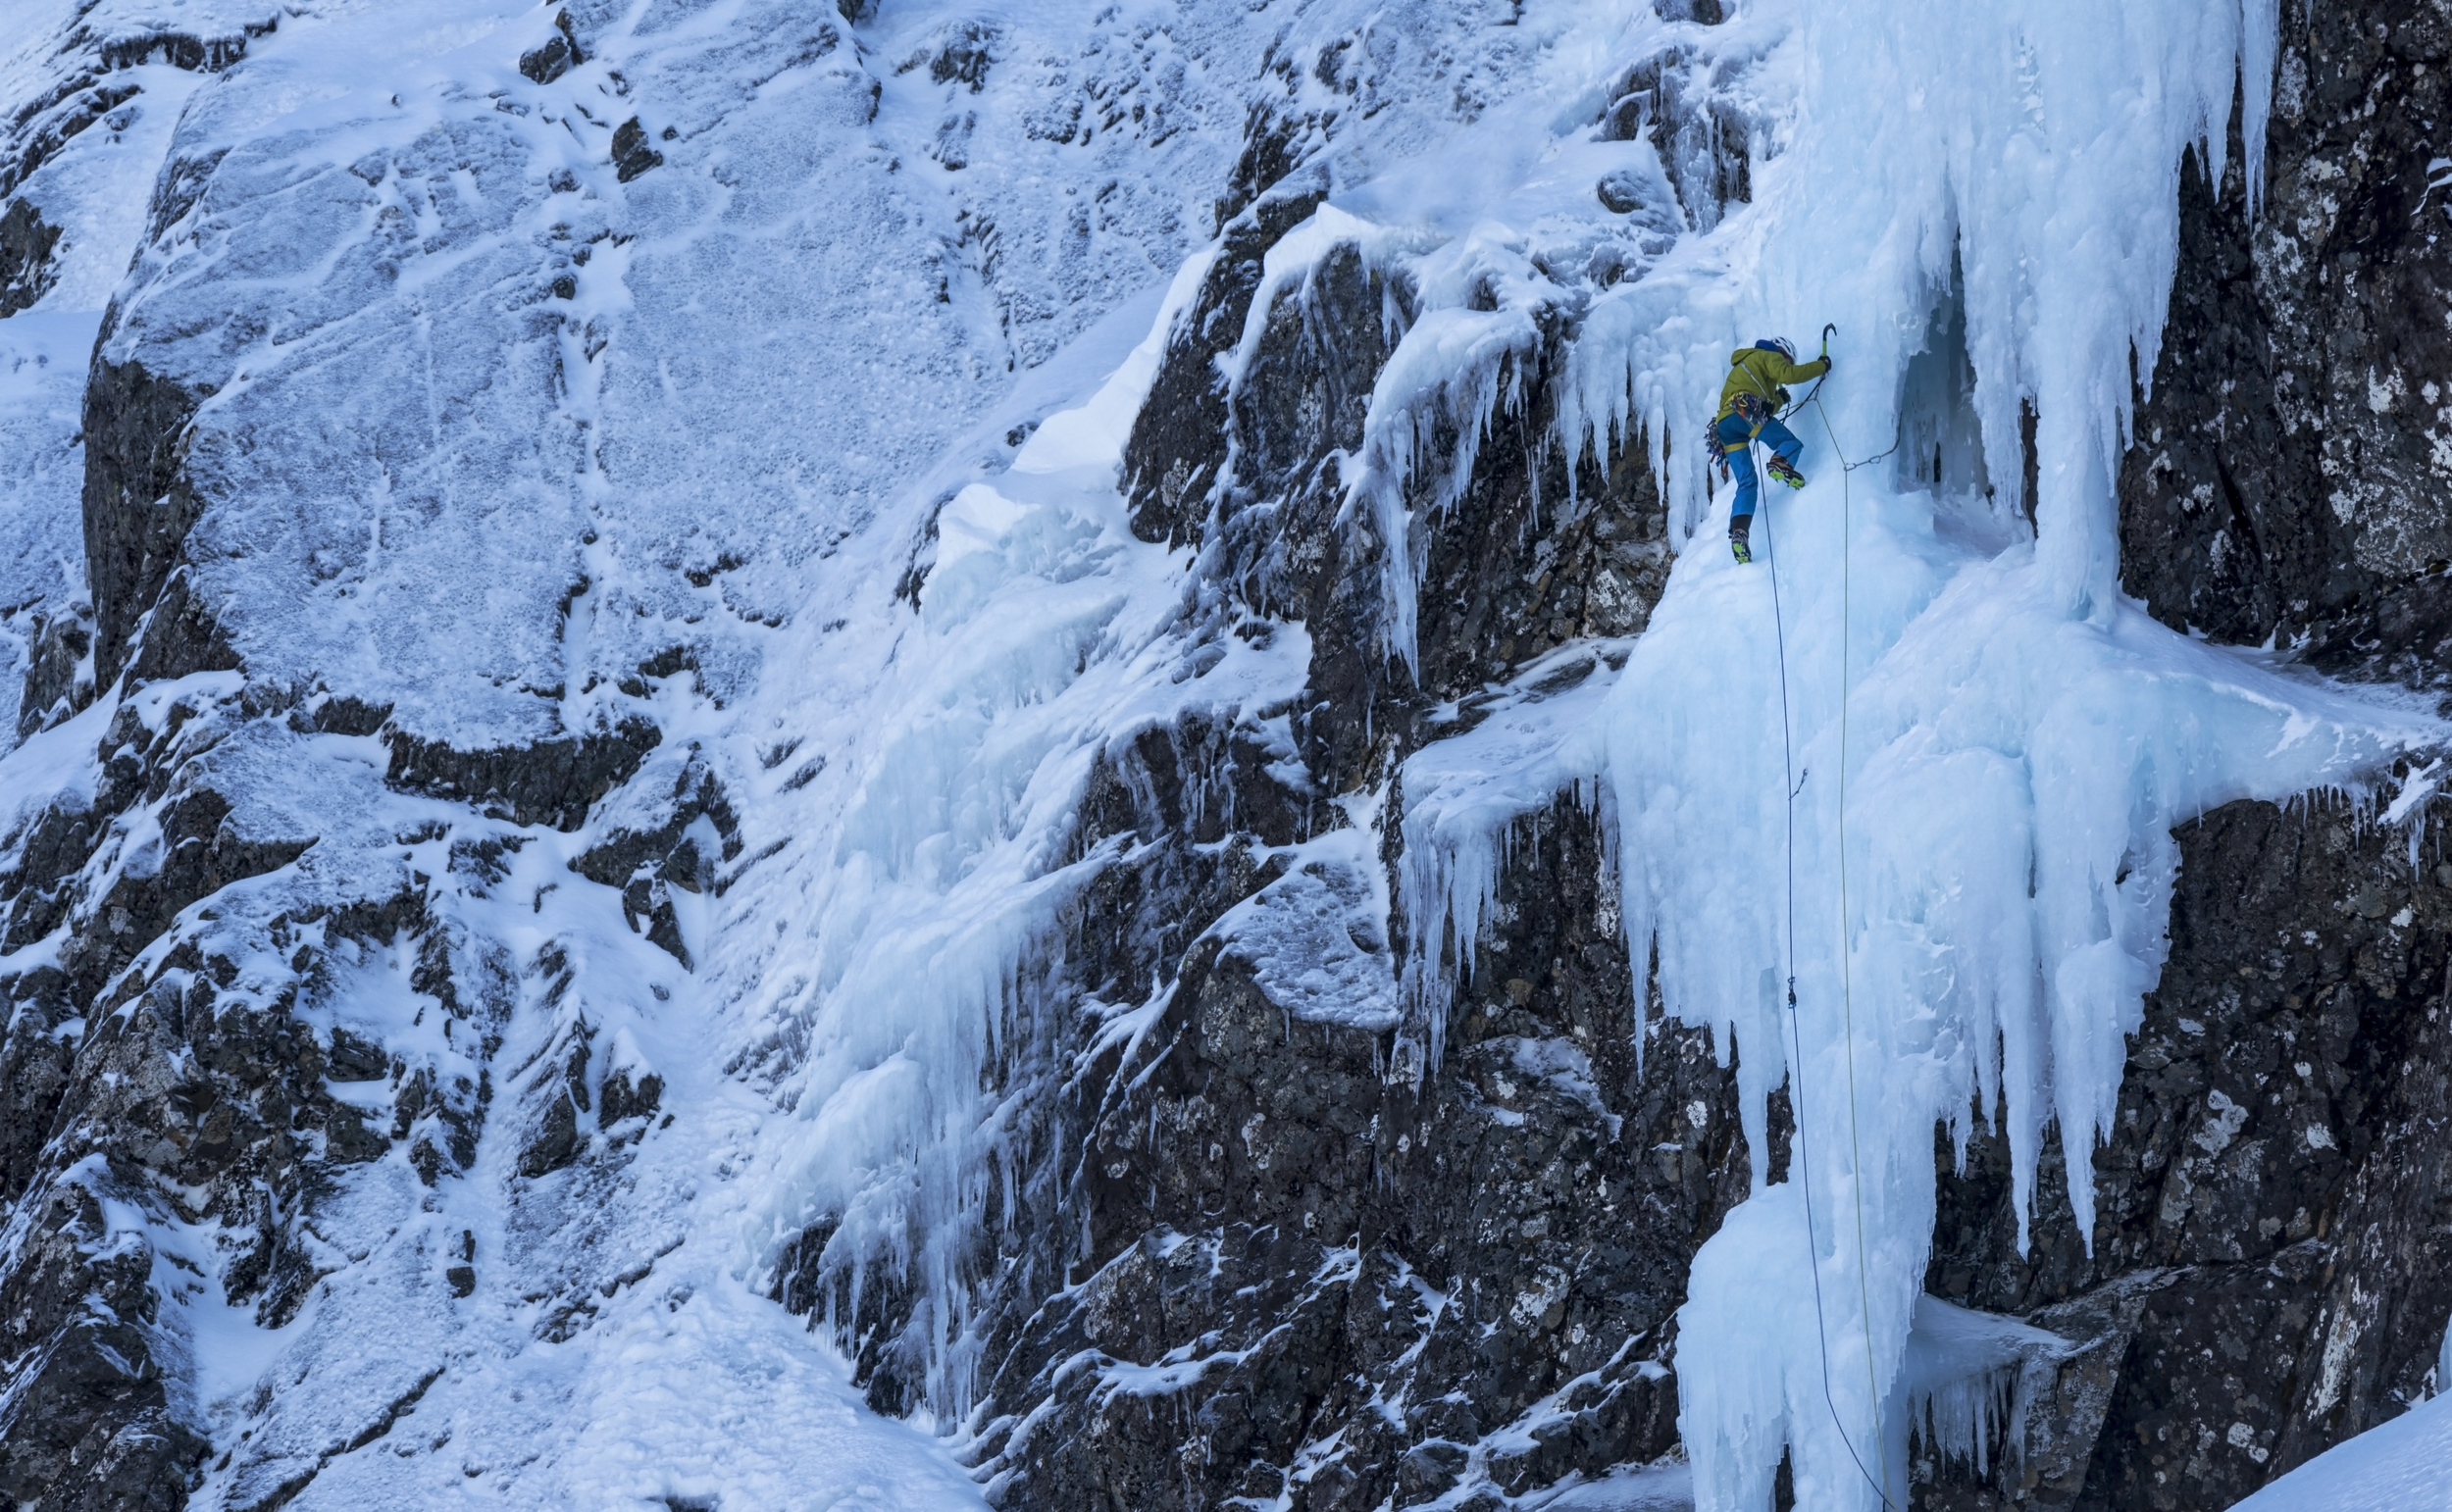 Dave MacLeod on the first pitch of 'Pink Panther' on the Upper Cascade area of Ben Nevis. Shot with Canon 6D + Canon 70-200mm + 2x Extender + LEE Filters Landscape Polariser.